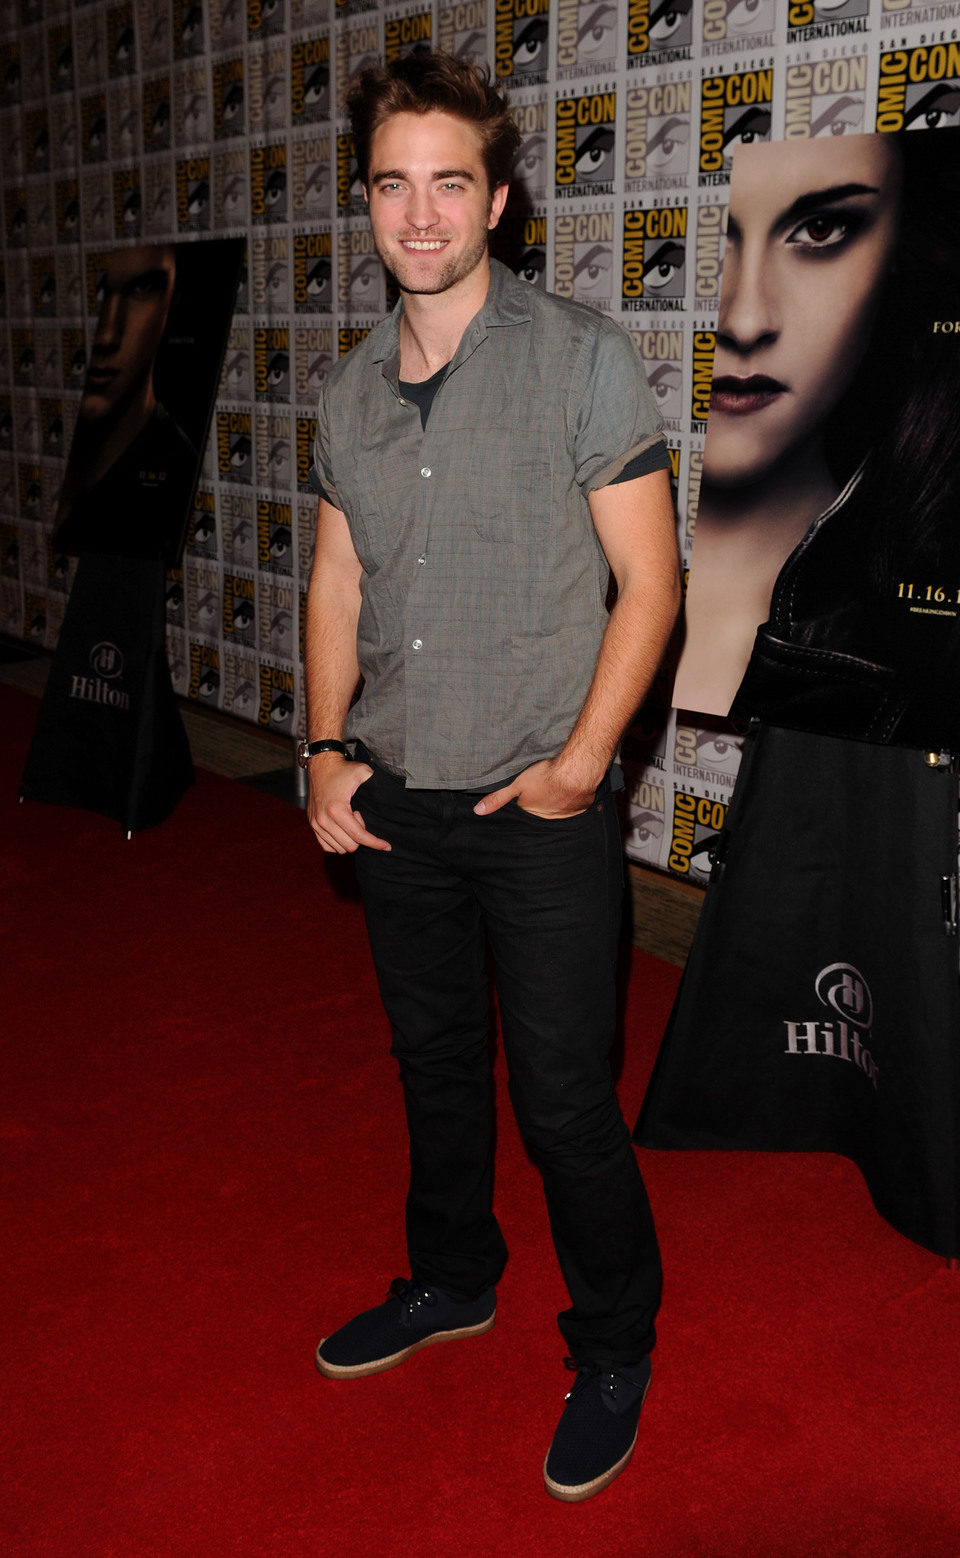 Robert Pattinson en la Comic-Con